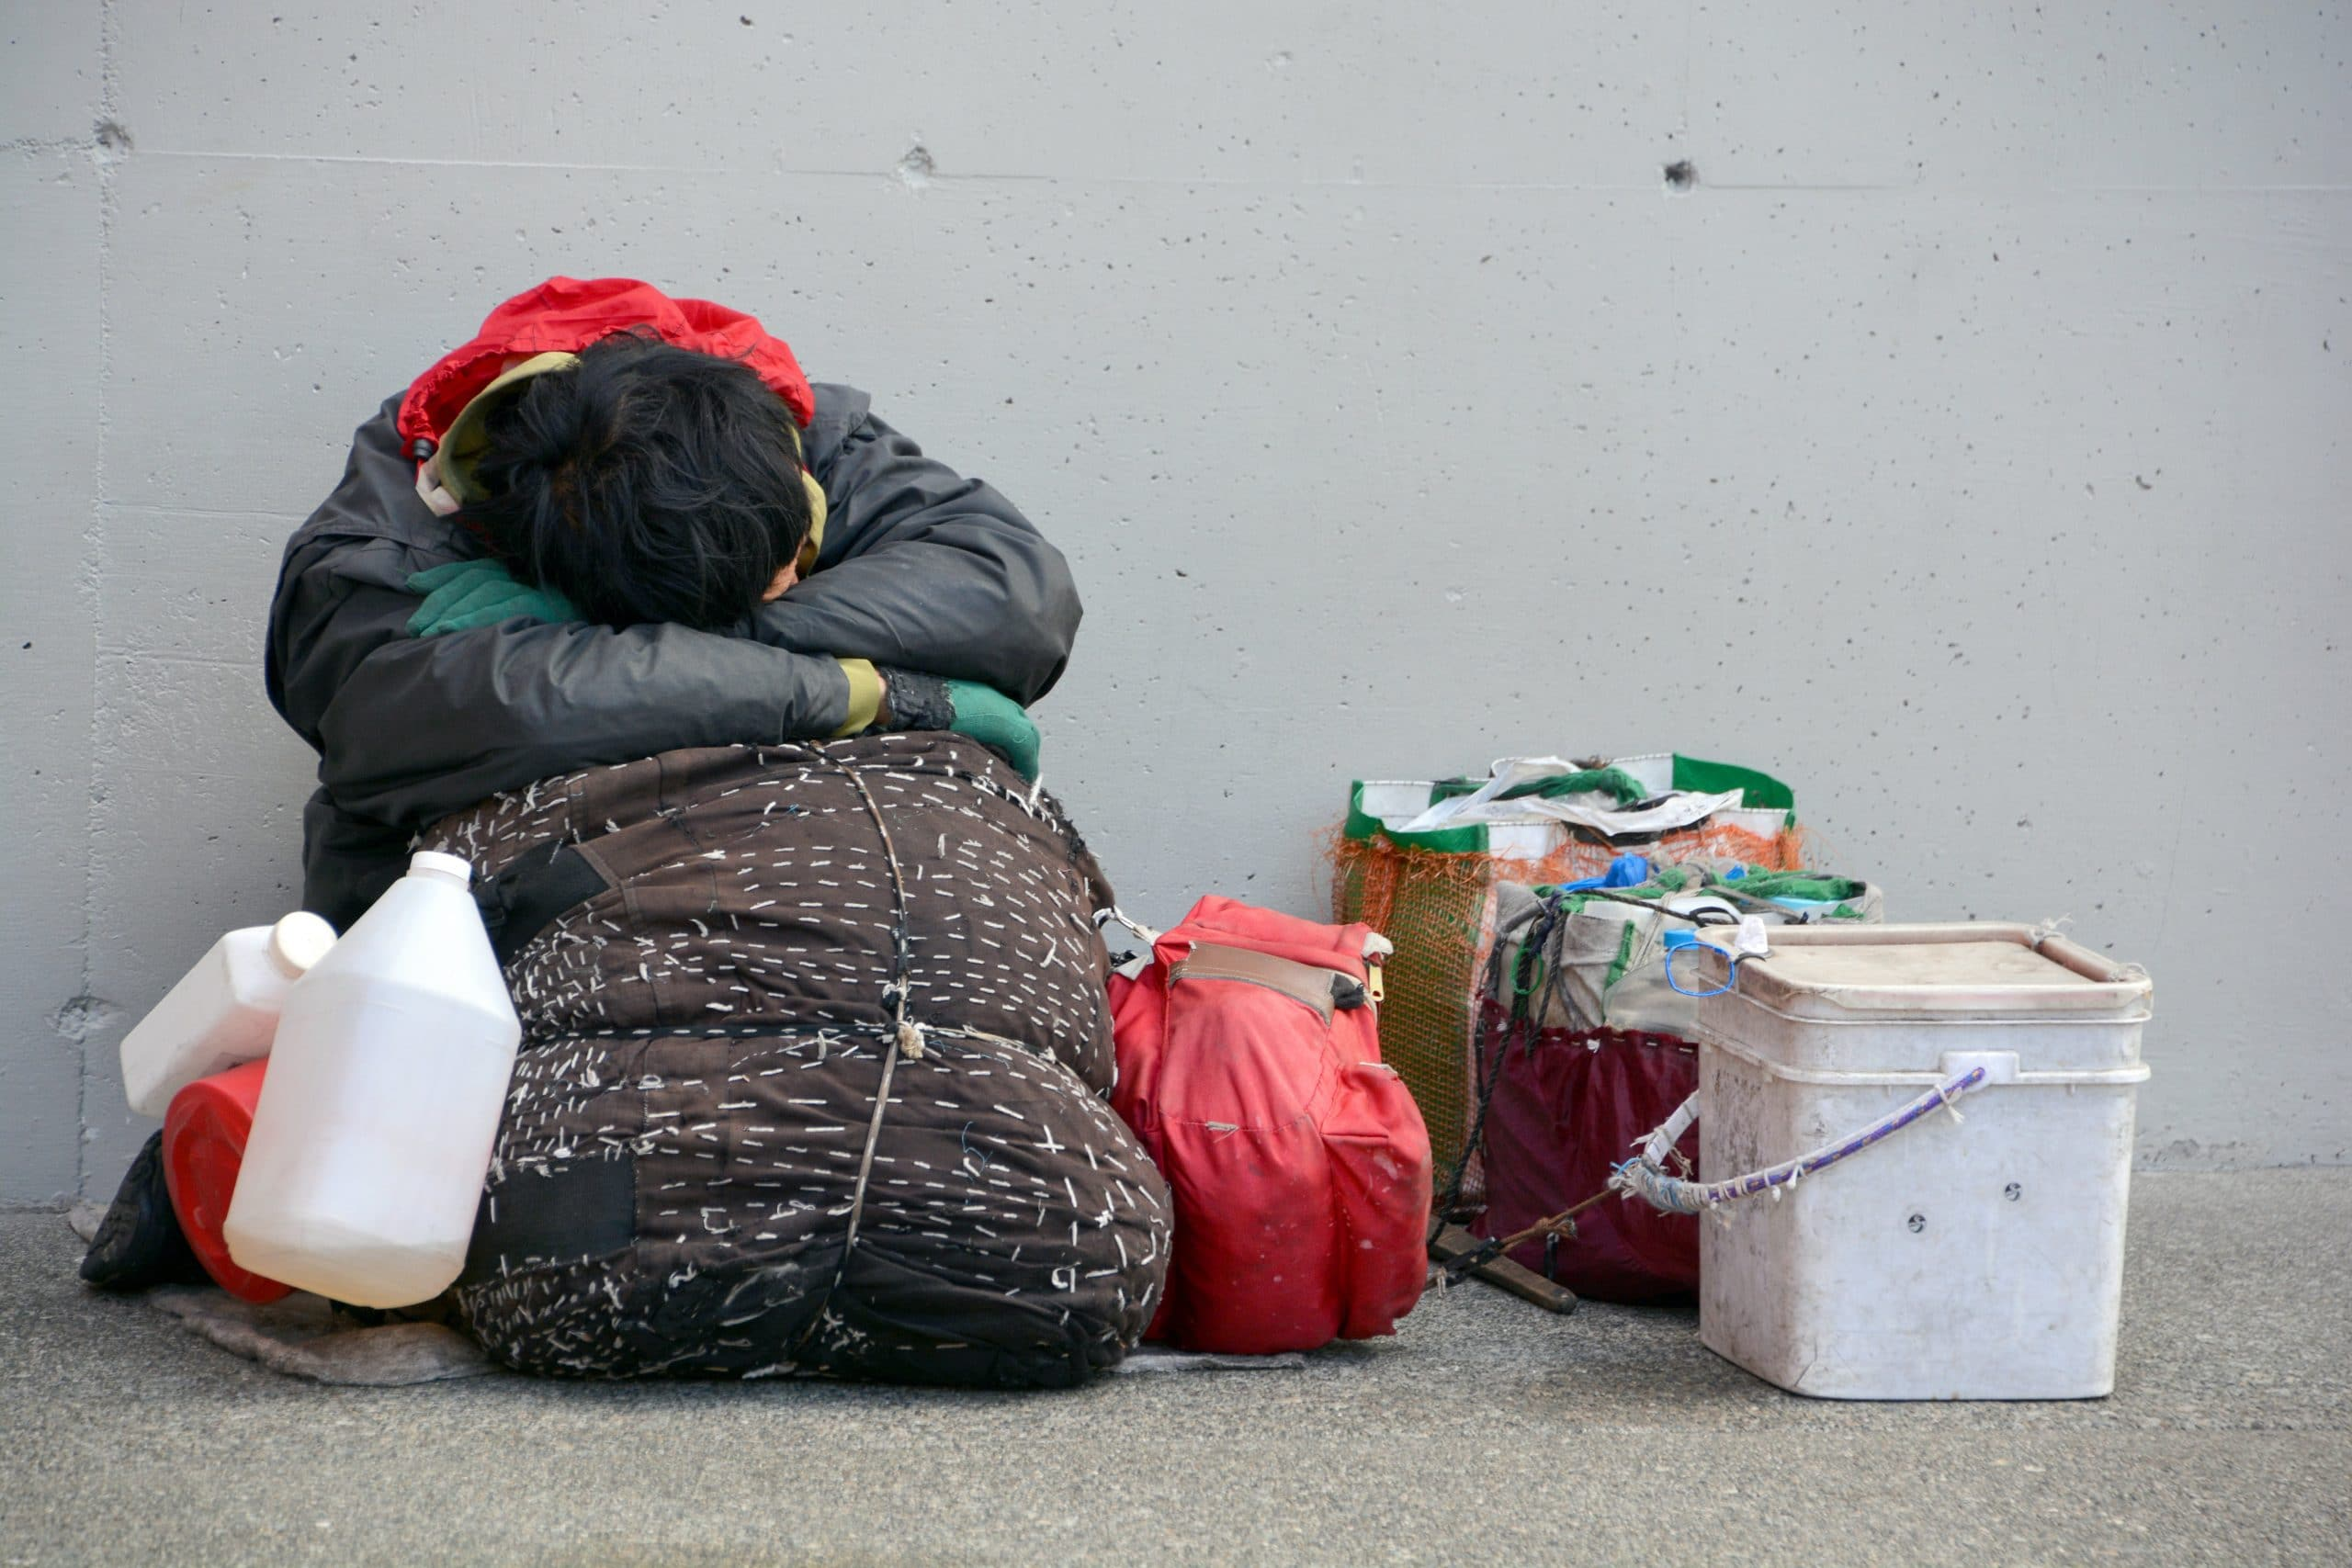 A homeless person sitting on the street wrapped in sleeping bag